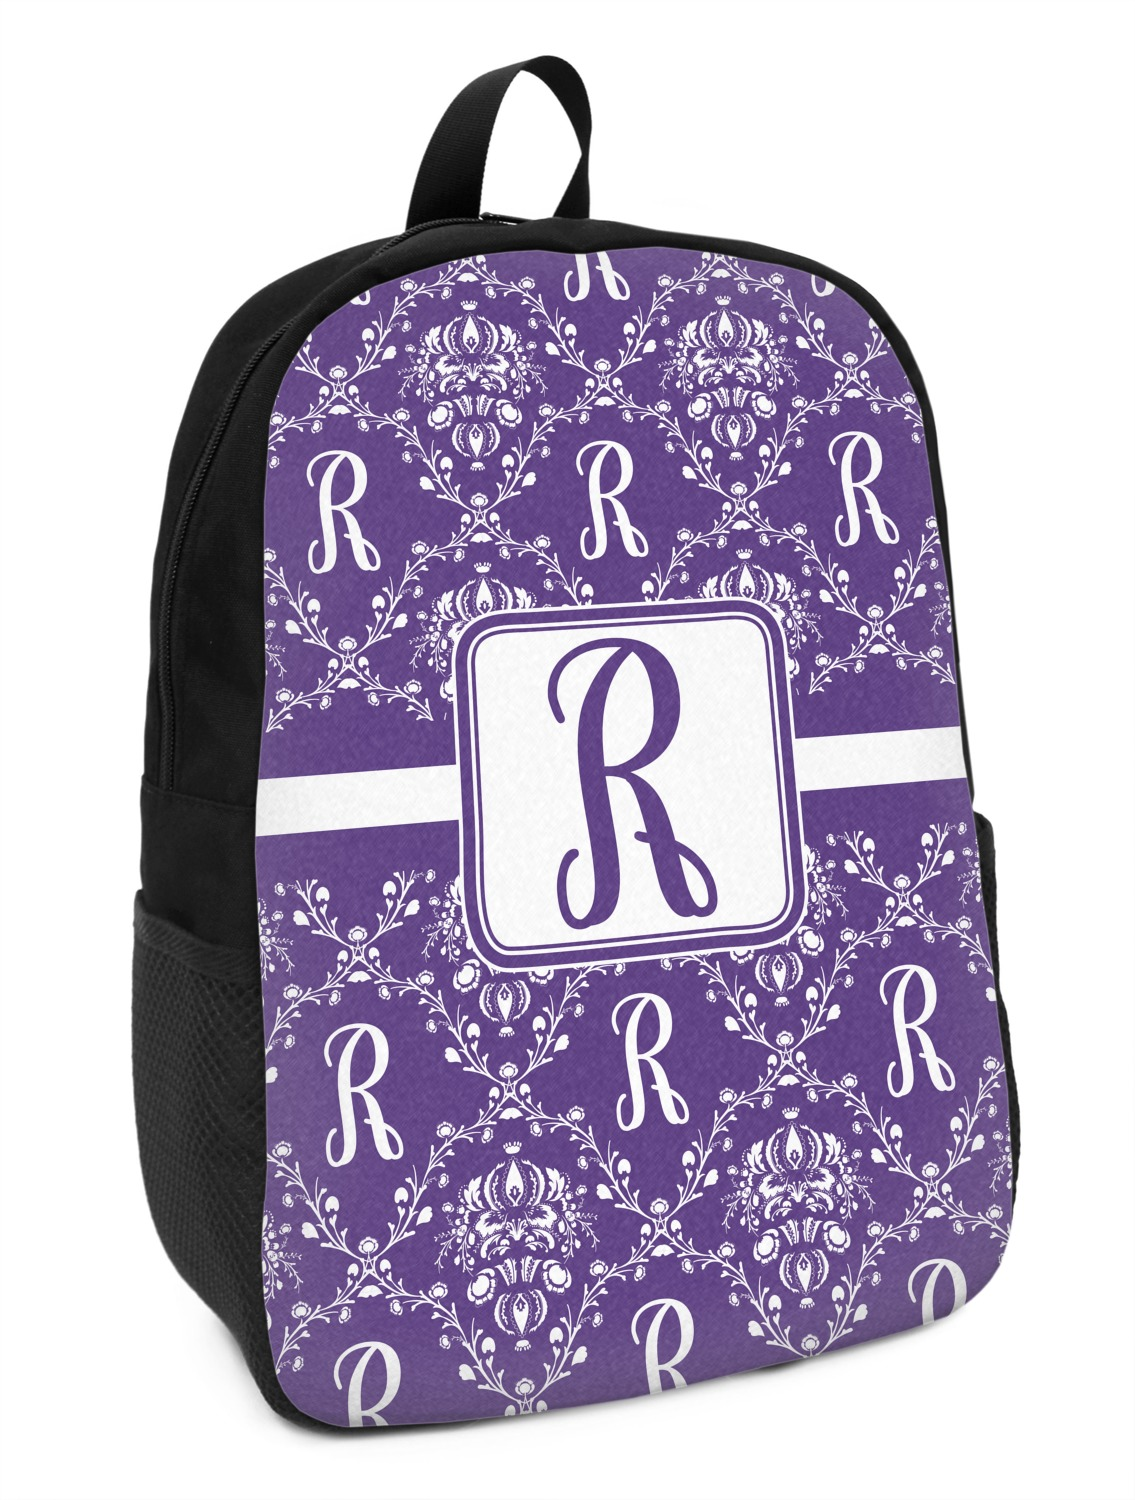 57eaf403bcab Initial Damask Kids Backpack (Personalized) - YouCustomizeIt